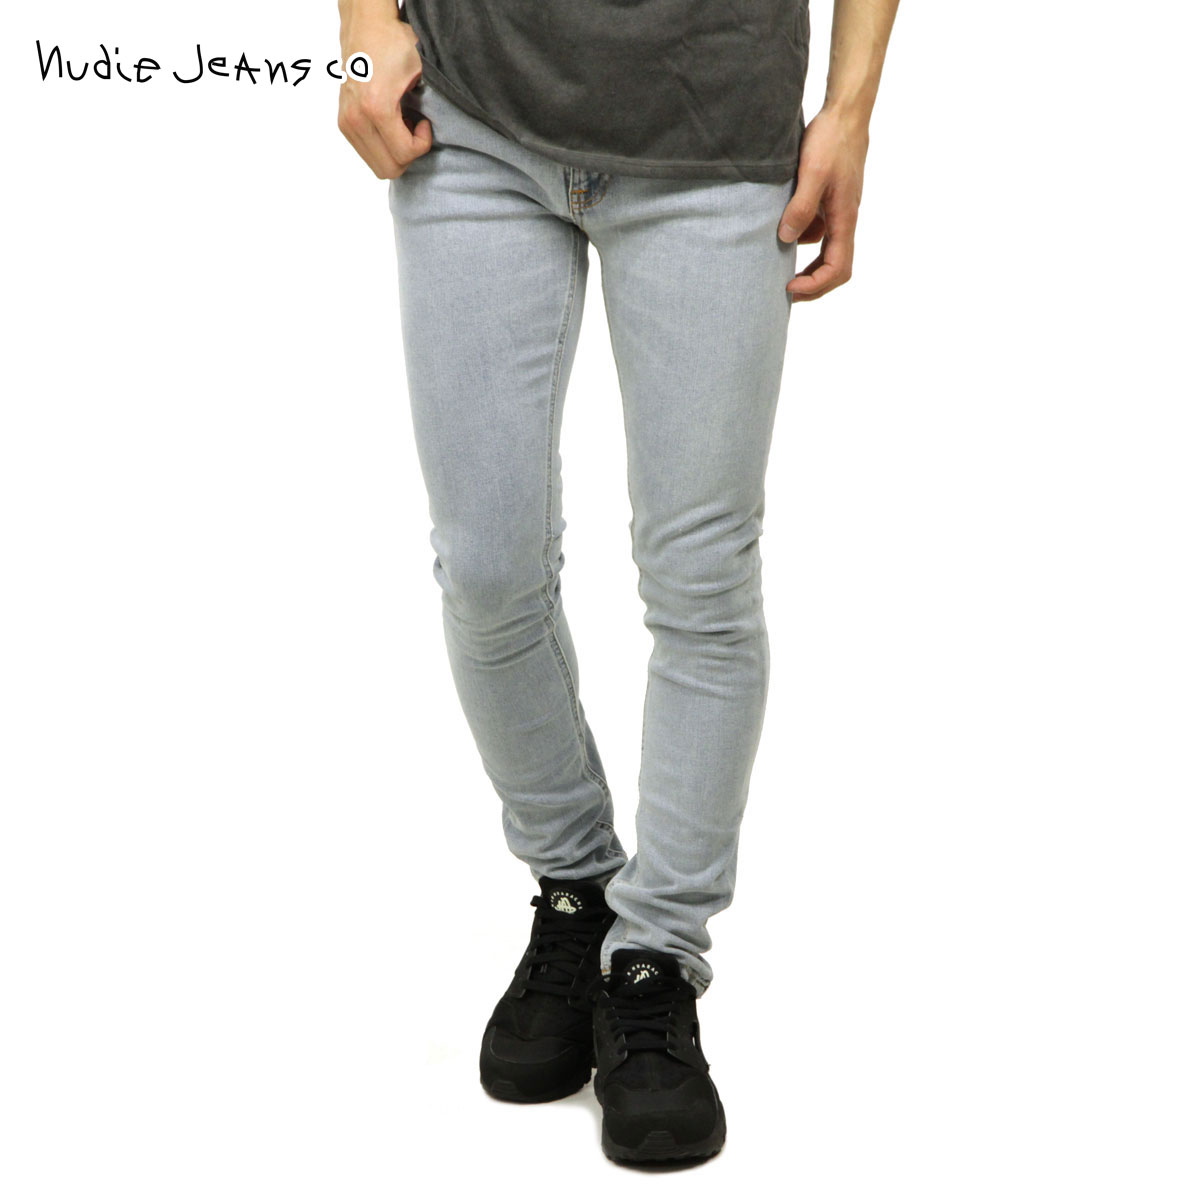 Nudie jeans Nudie Jeans regular store men jeans Kinney phosphorus SKINNY  LIN JEANS SUMMER BREEZE 884 1126680